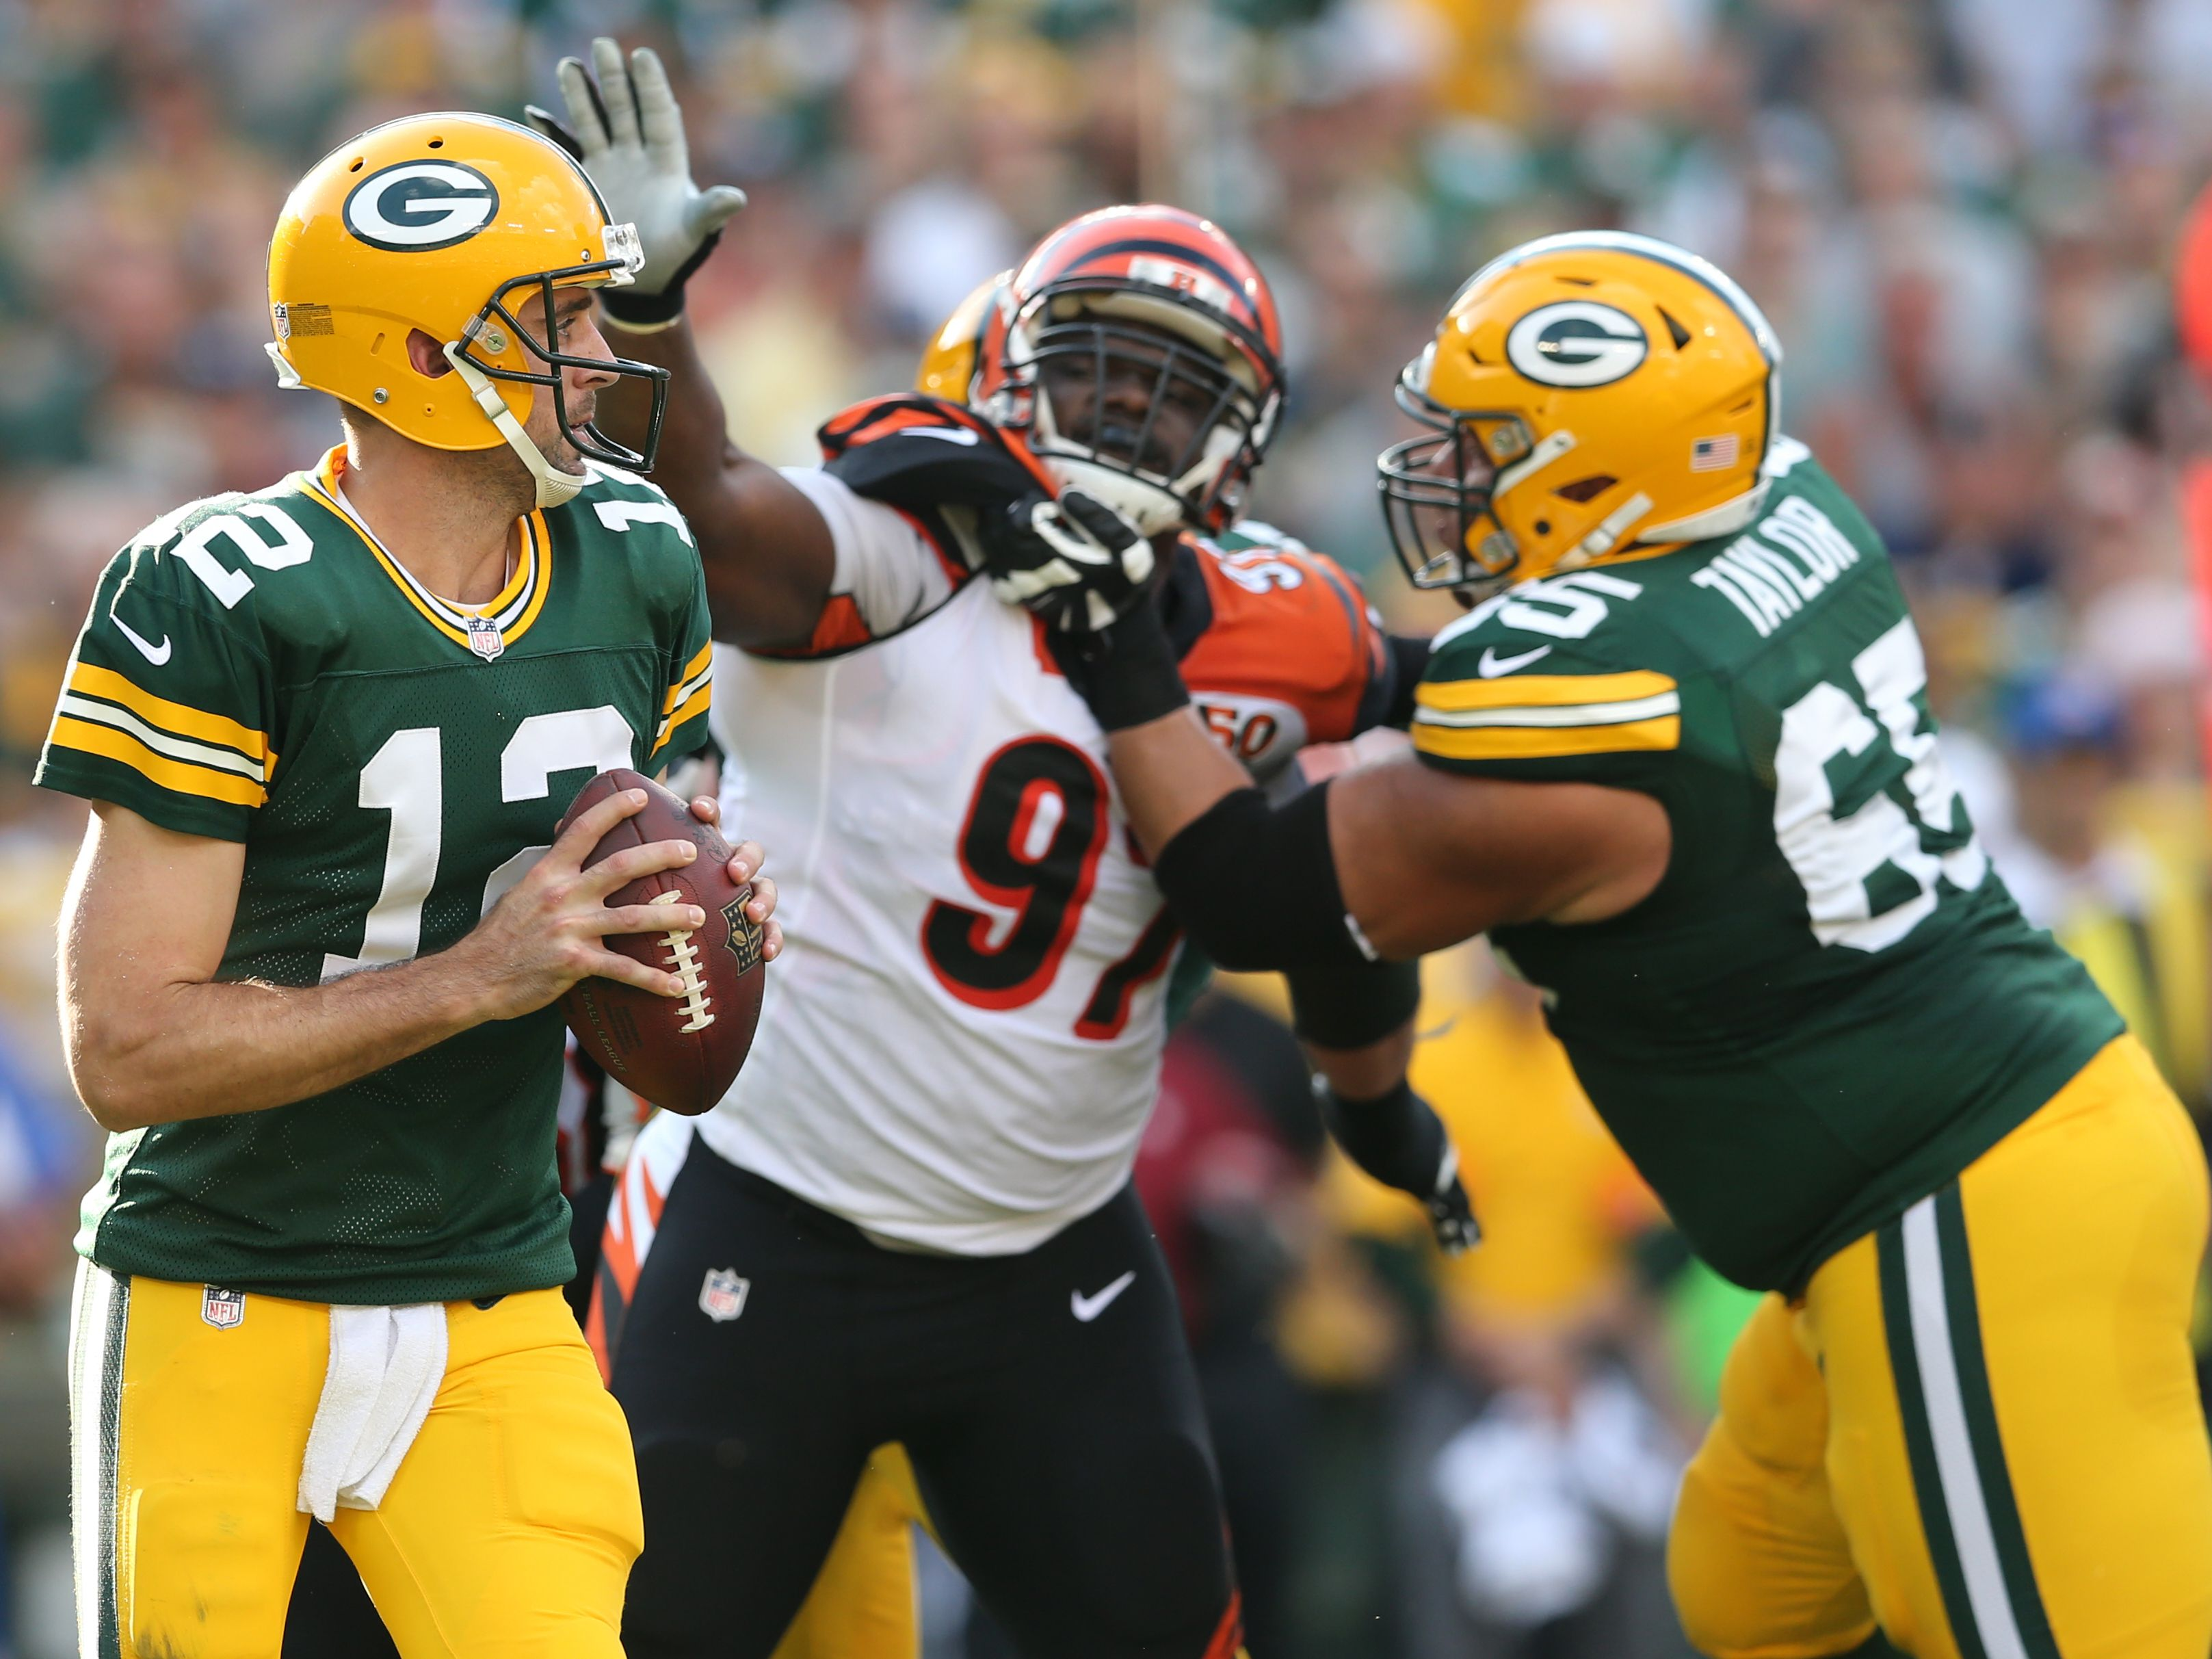 Six Key Factors That Will Determine the Winner of the Packers-Bengals in Week 5